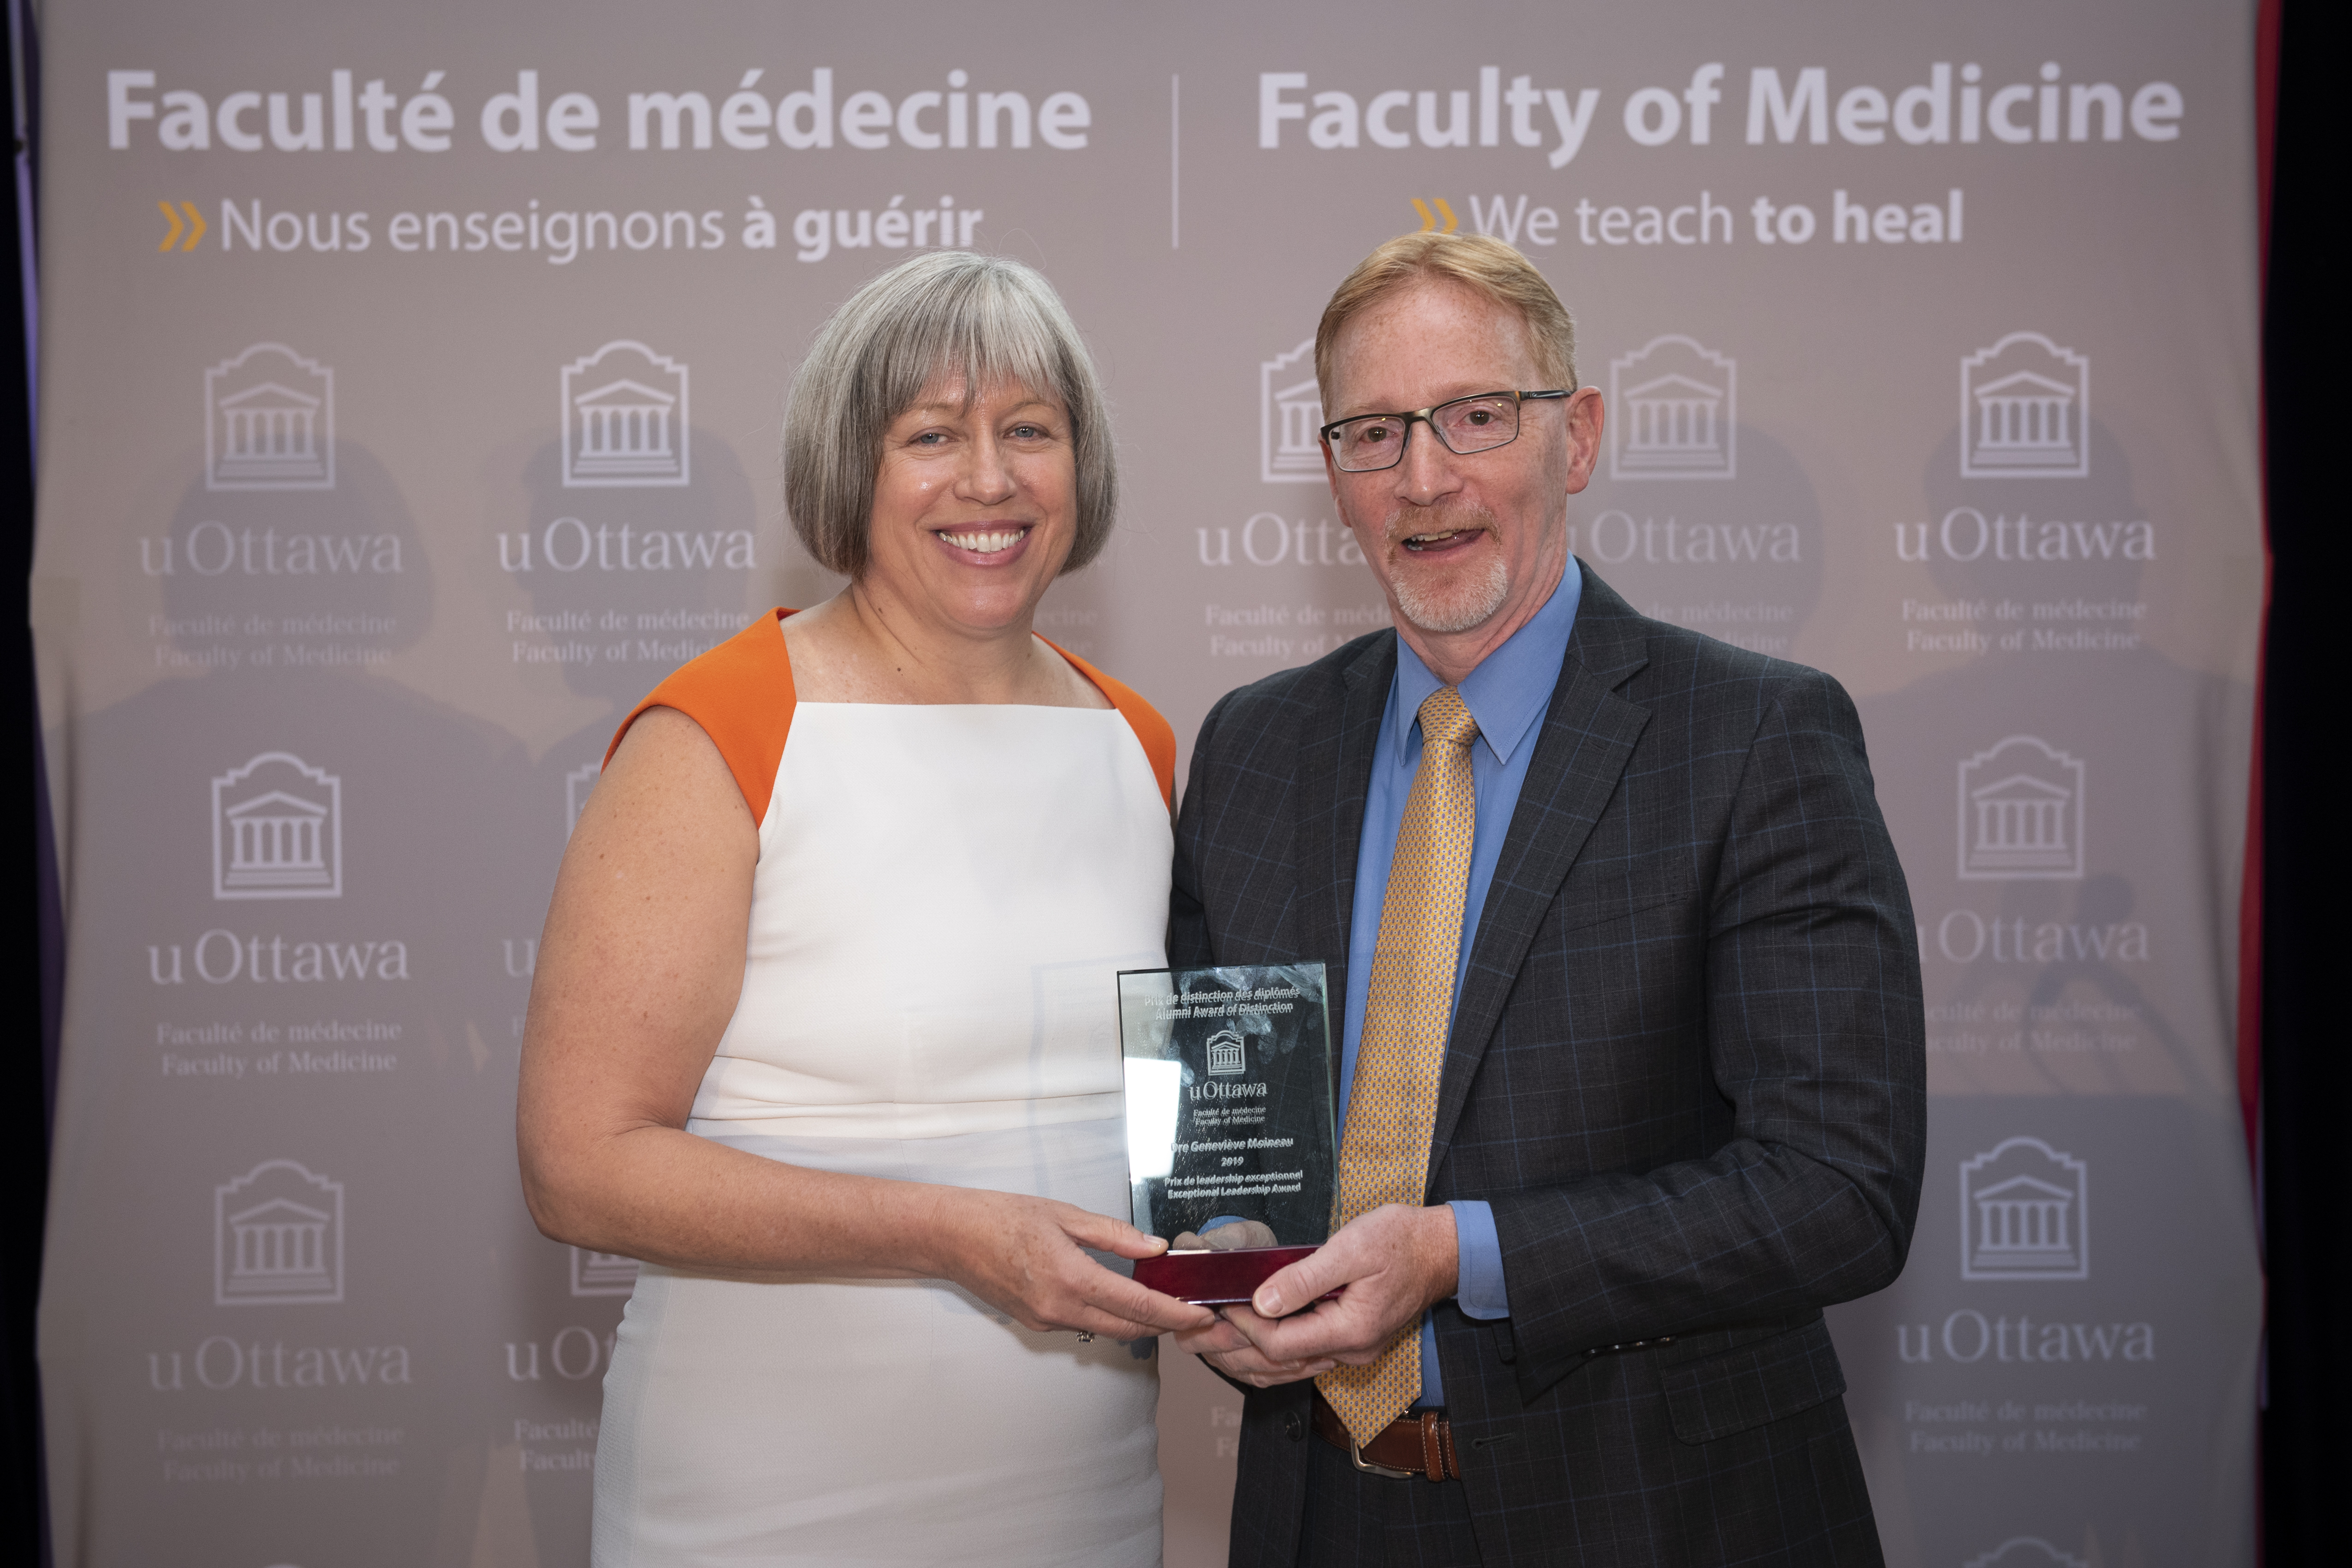 Dr. Moineau receives Exceptional Leadership Award